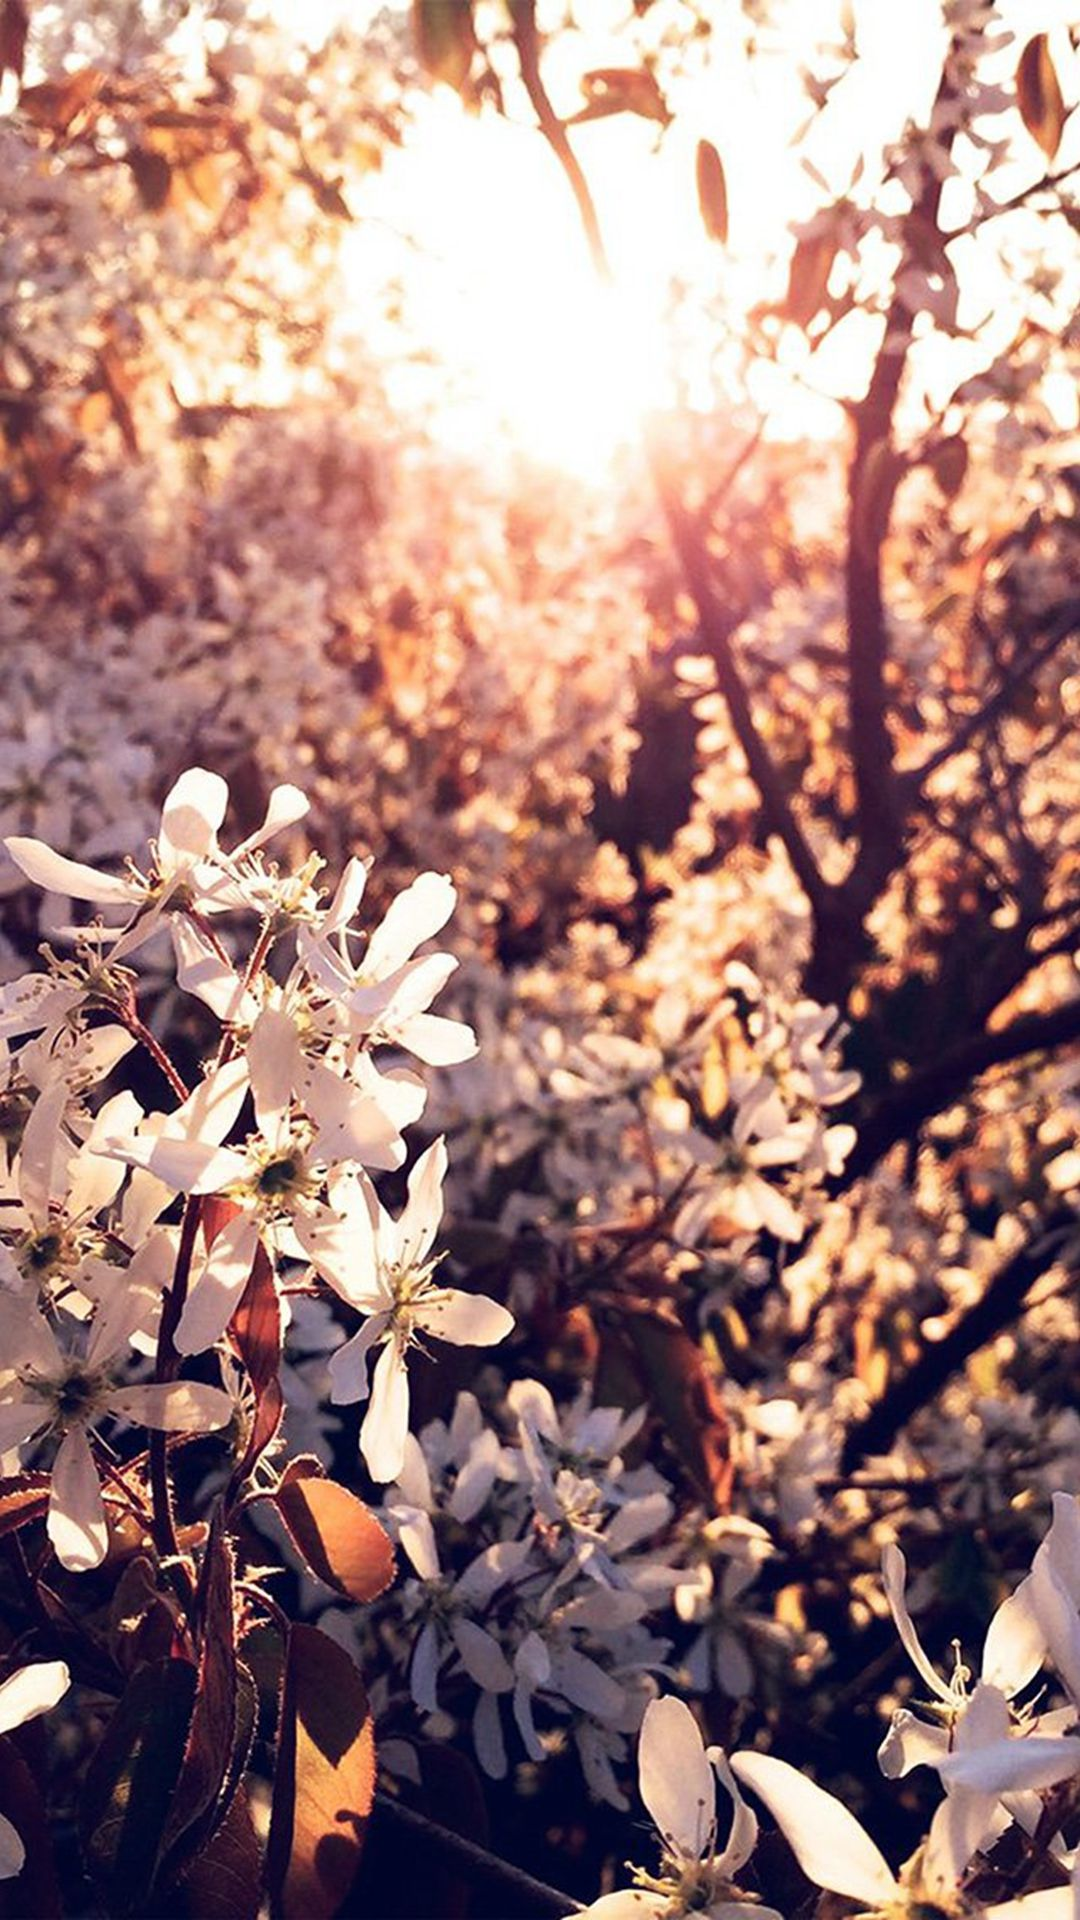 Tree Flower Blossom Spring Nature Iphone 6 Wallpaper Nature